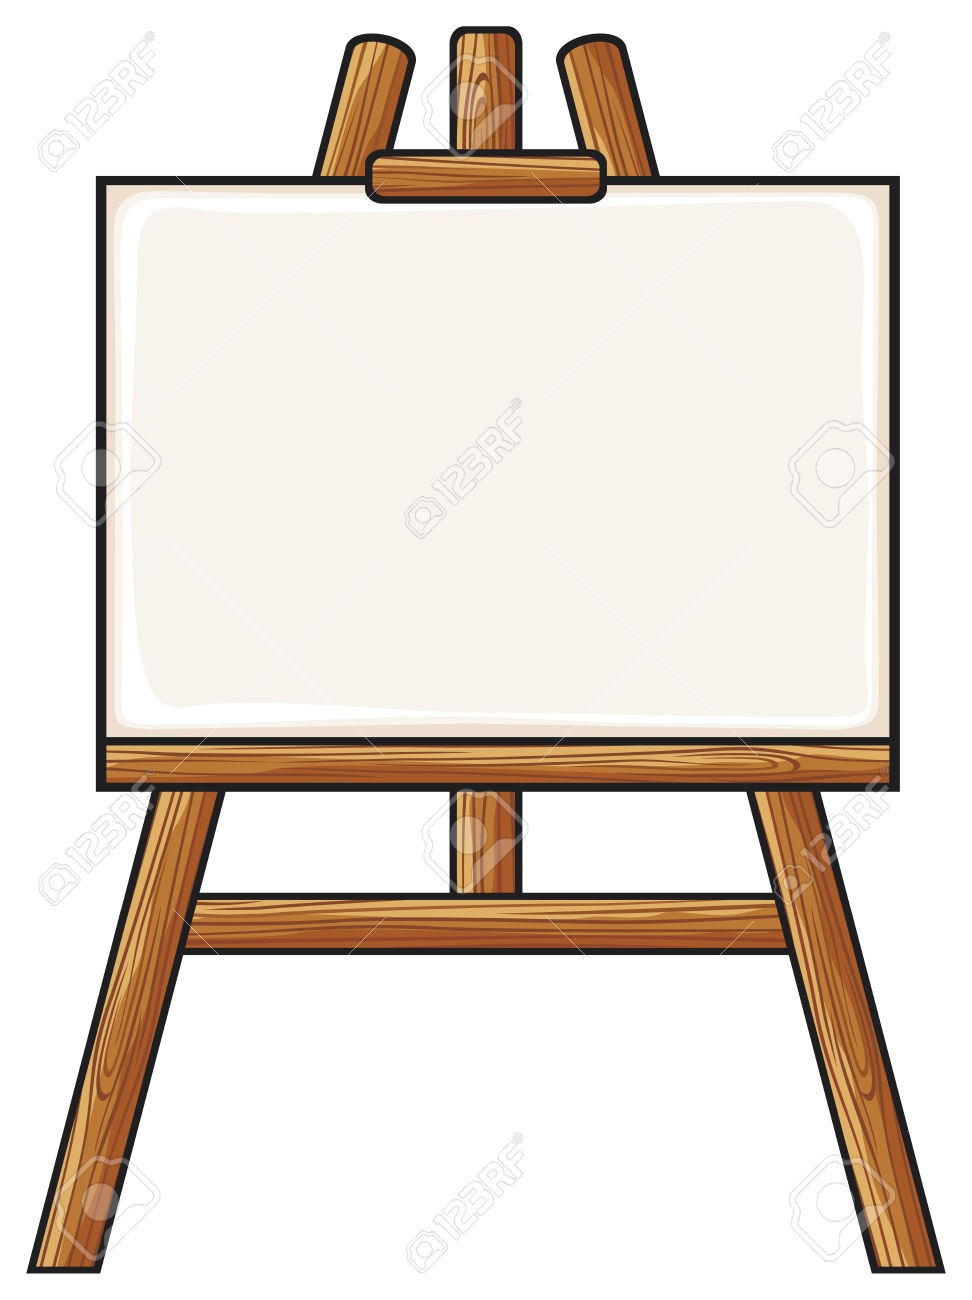 Artists easel clipart graphic download 46+ Easel Clipart | ClipartLook graphic download